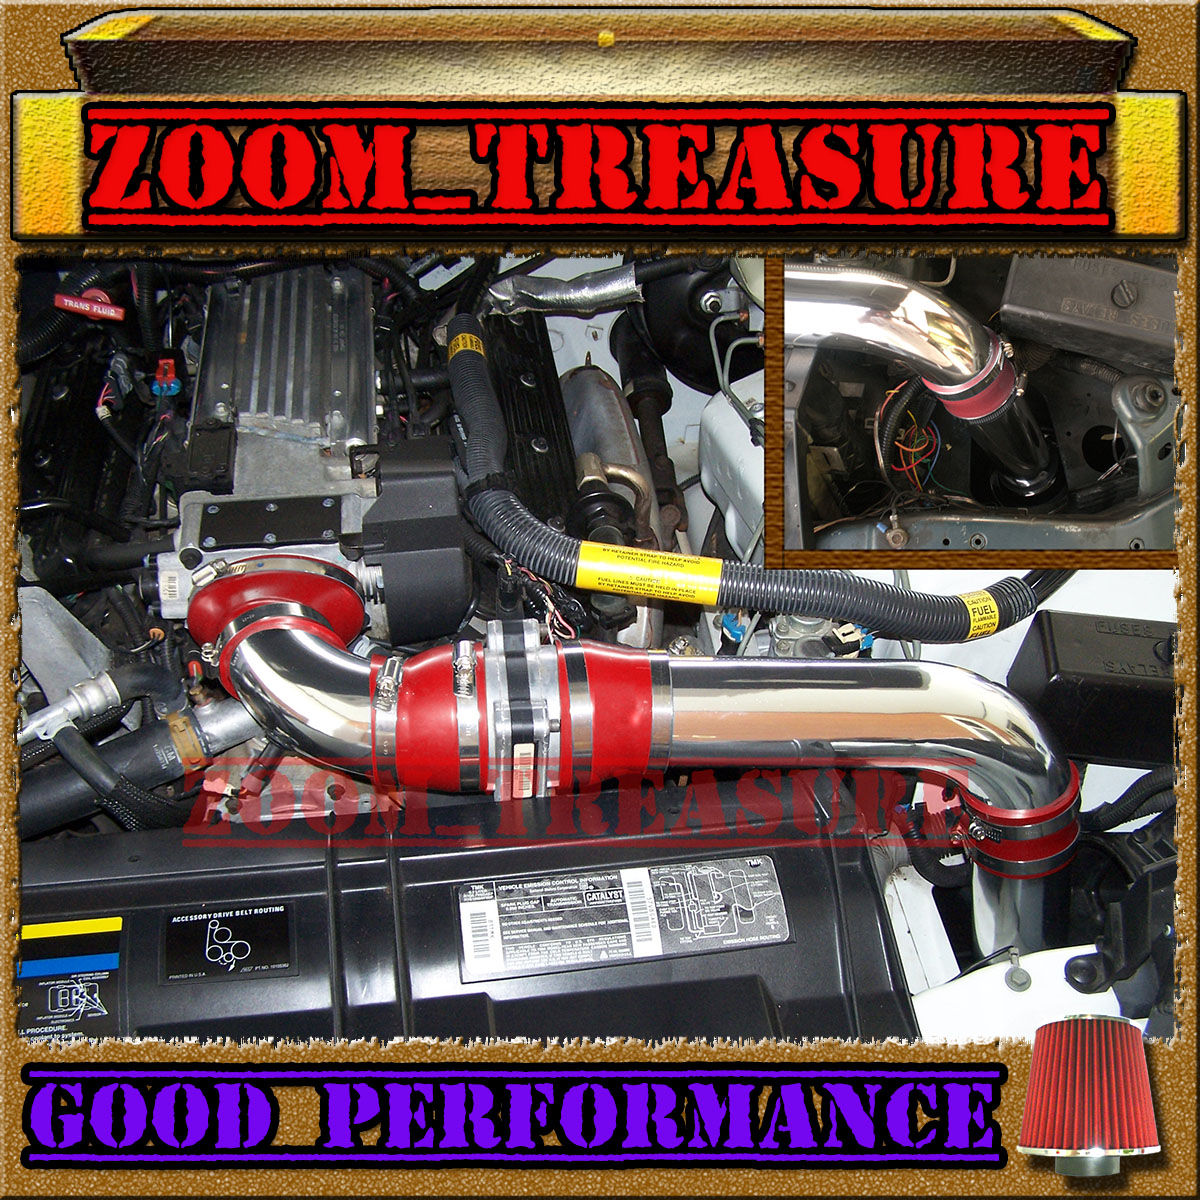 94-97 CHEVY CAMARO Z28 FORMULA TRANS AM 5.7L LT1 FULL COLD AIR INTAKE+CHF Red 3